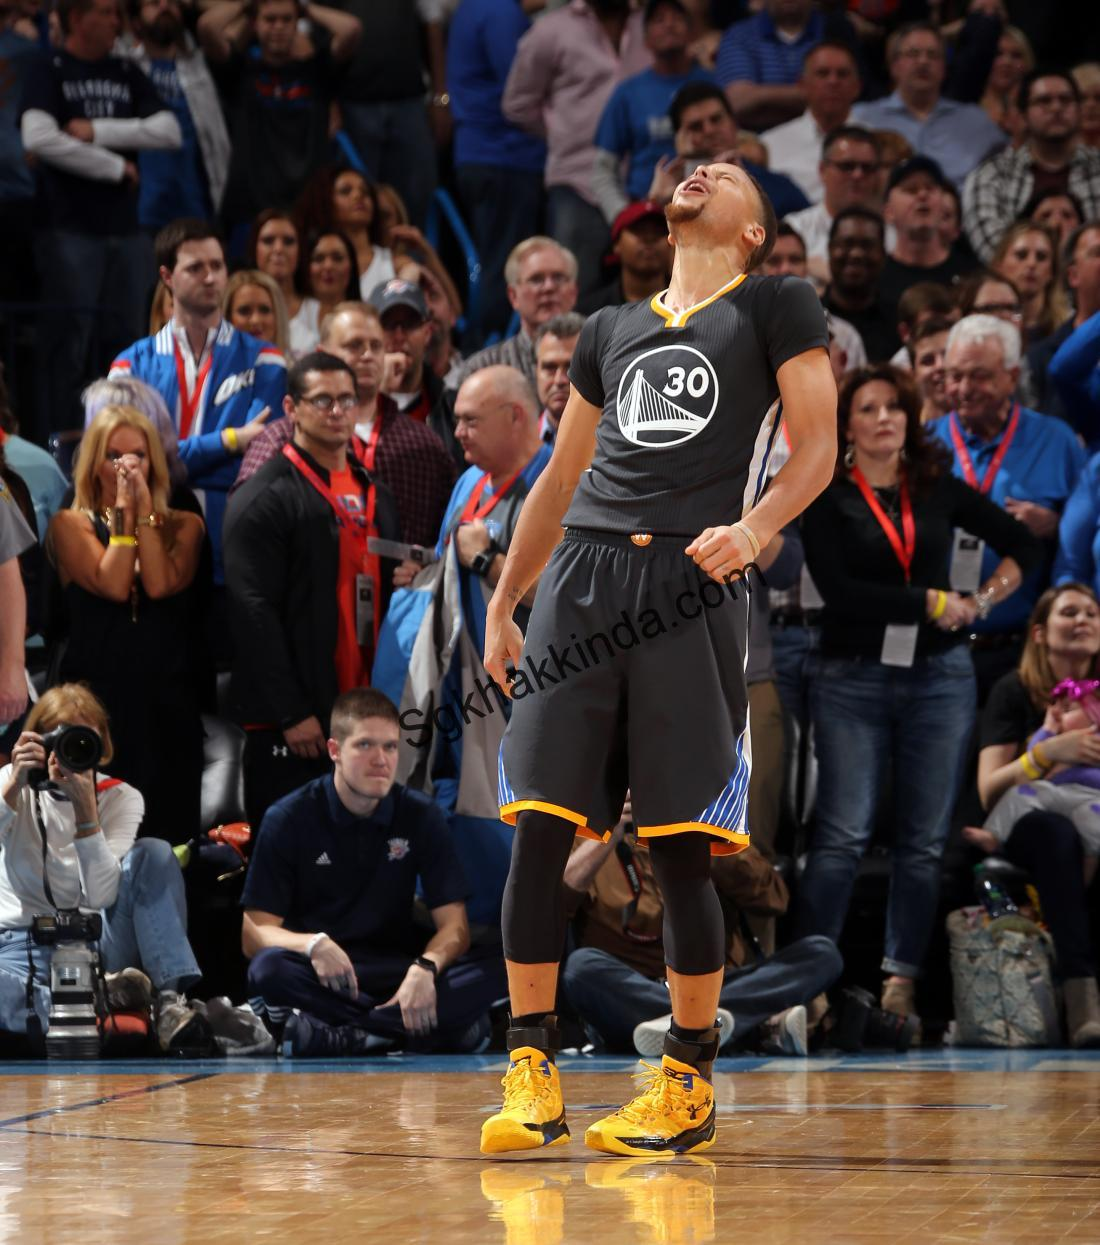 gettyimages 512851564 - Stephen Curry: The Antidote to America's Anger Problem